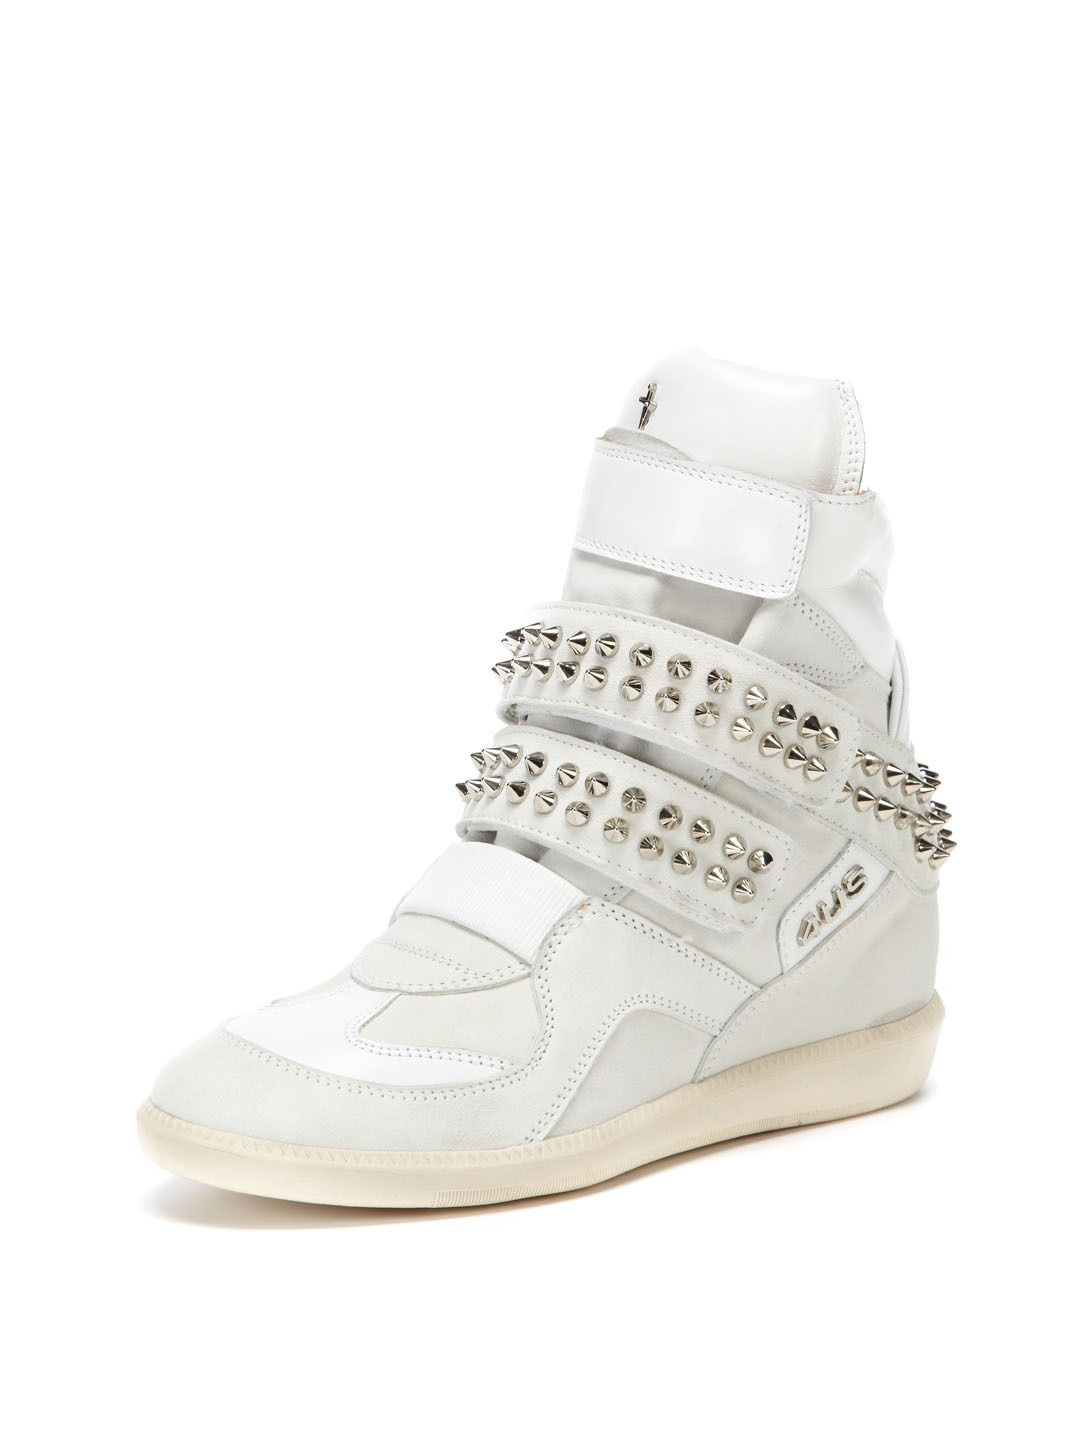 Studded Suede Leather Combo Wedge Sneaker by Cesare Paciotti at Gilt